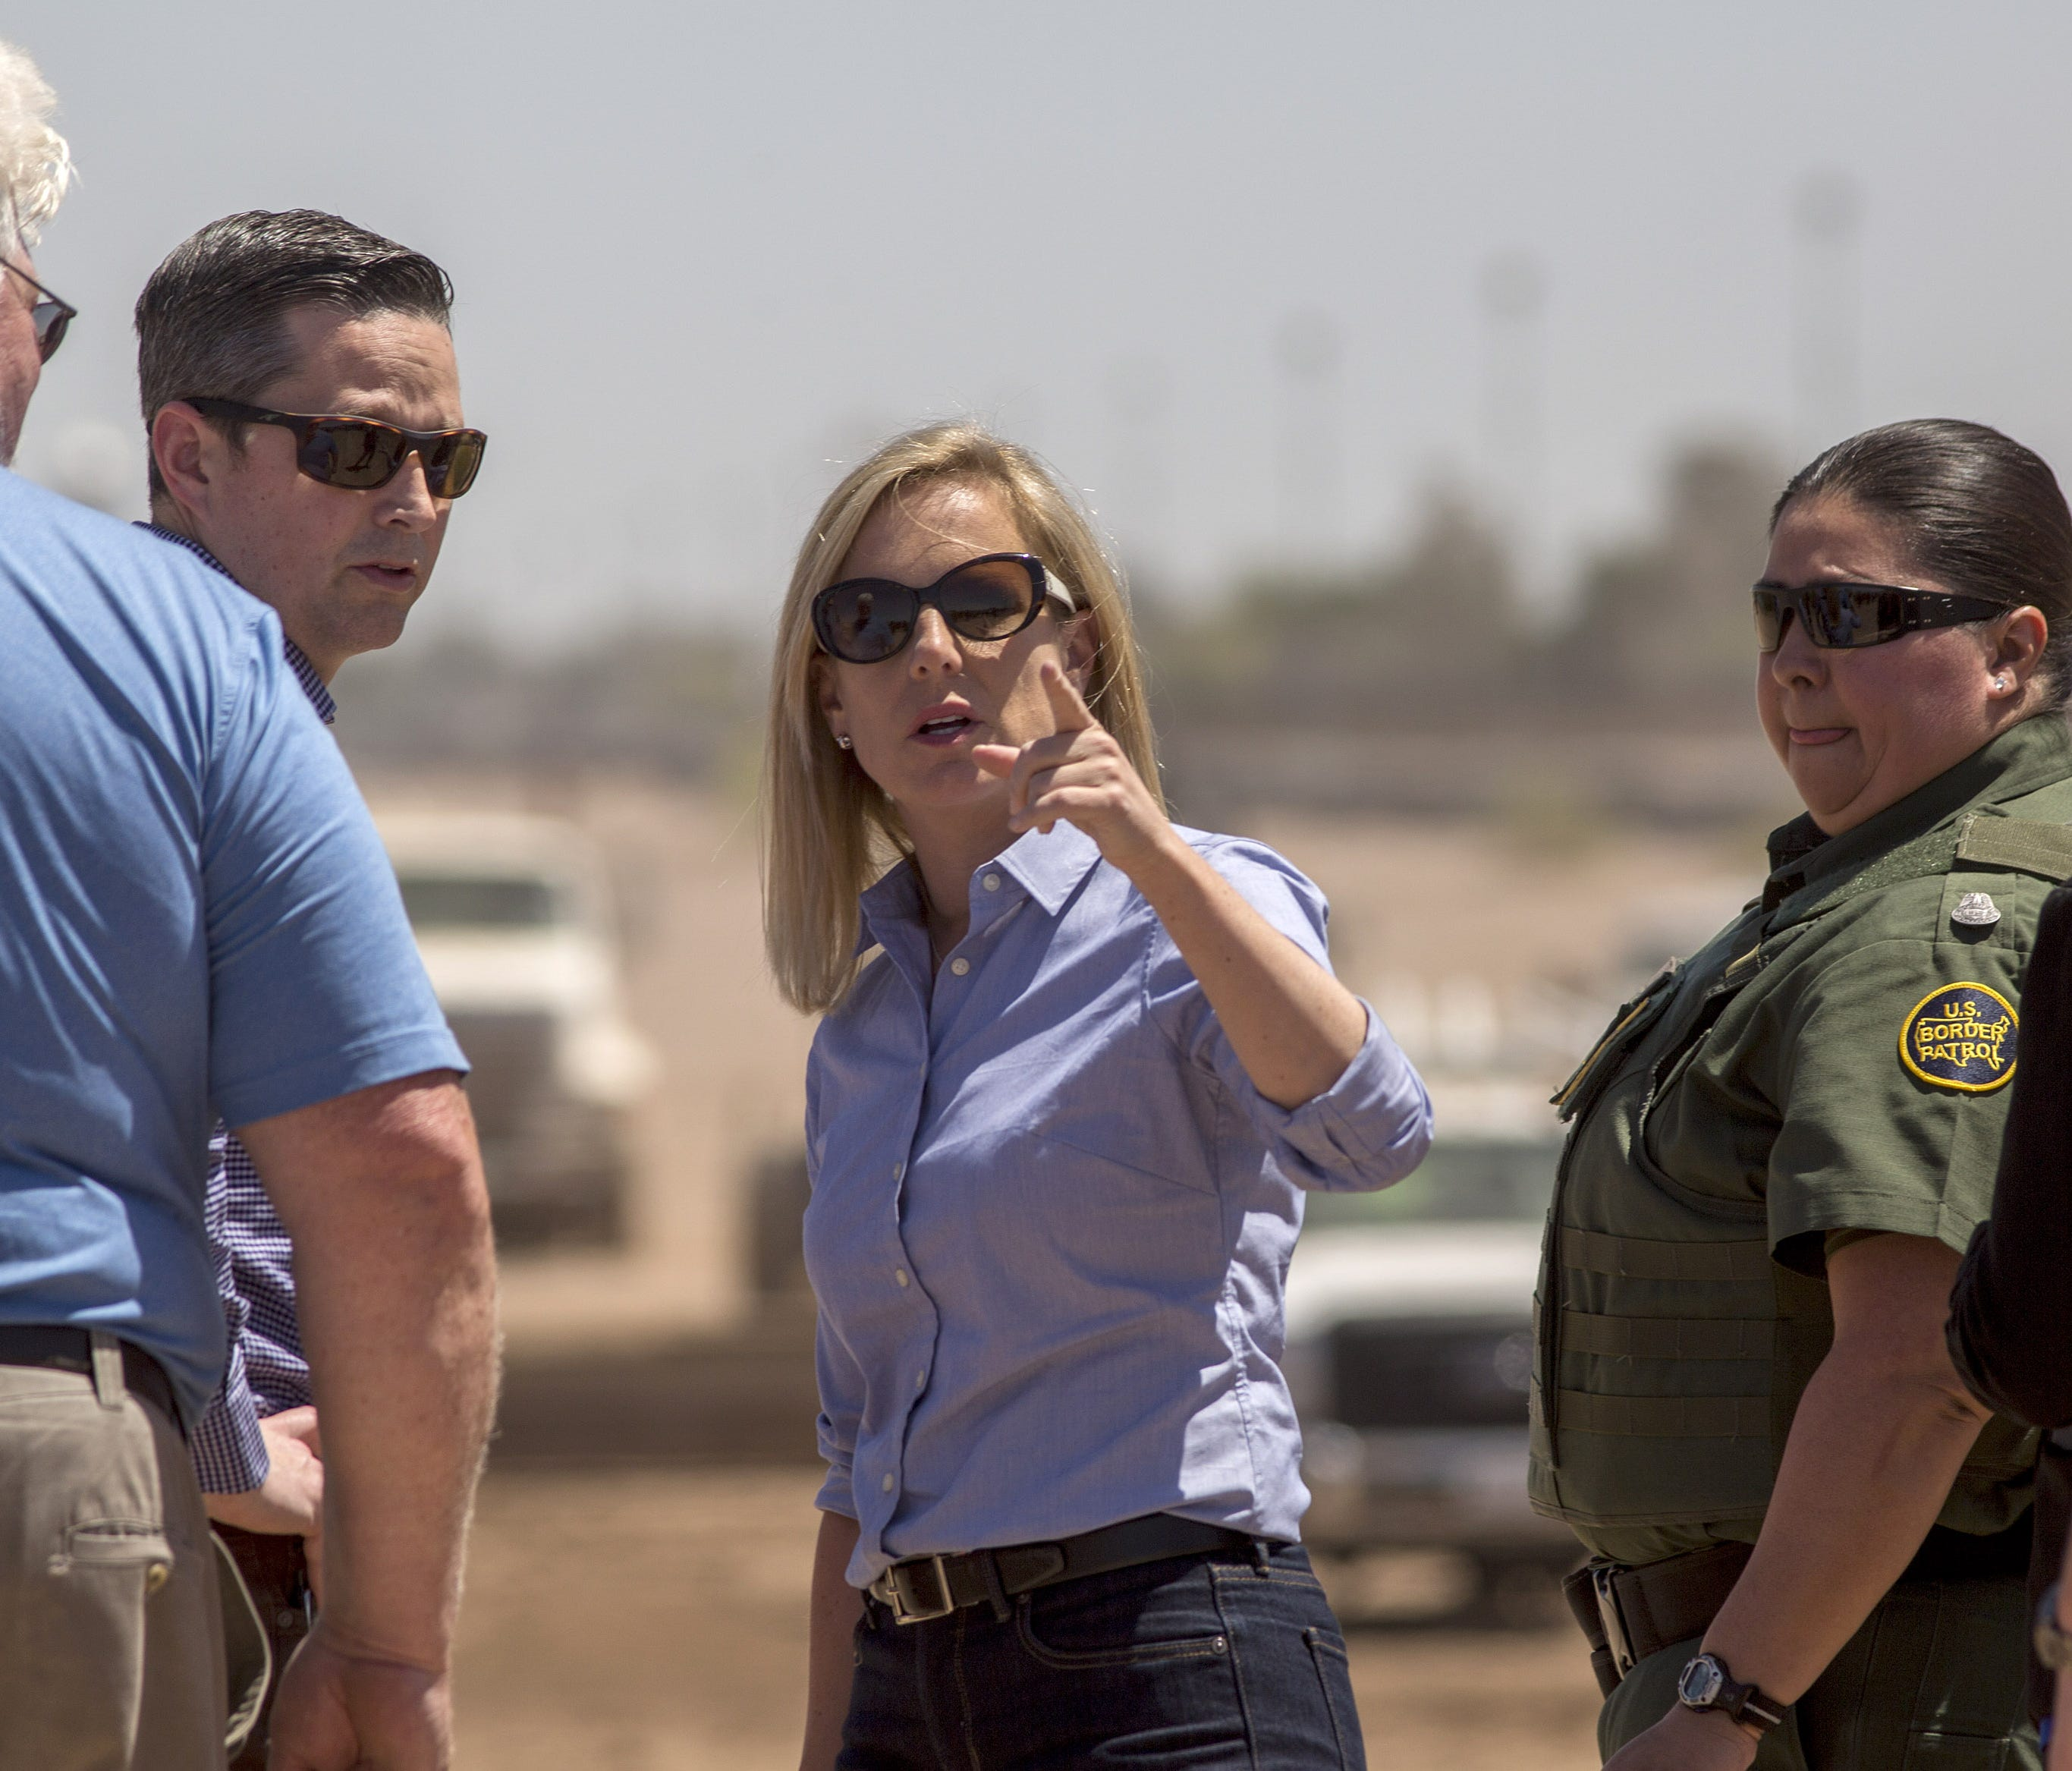 U.S. Department of Homeland Security Secretary Kirstjen Nielsen tours a replacement border wall construction site on April 18, 2018 in Calexico, Calif.